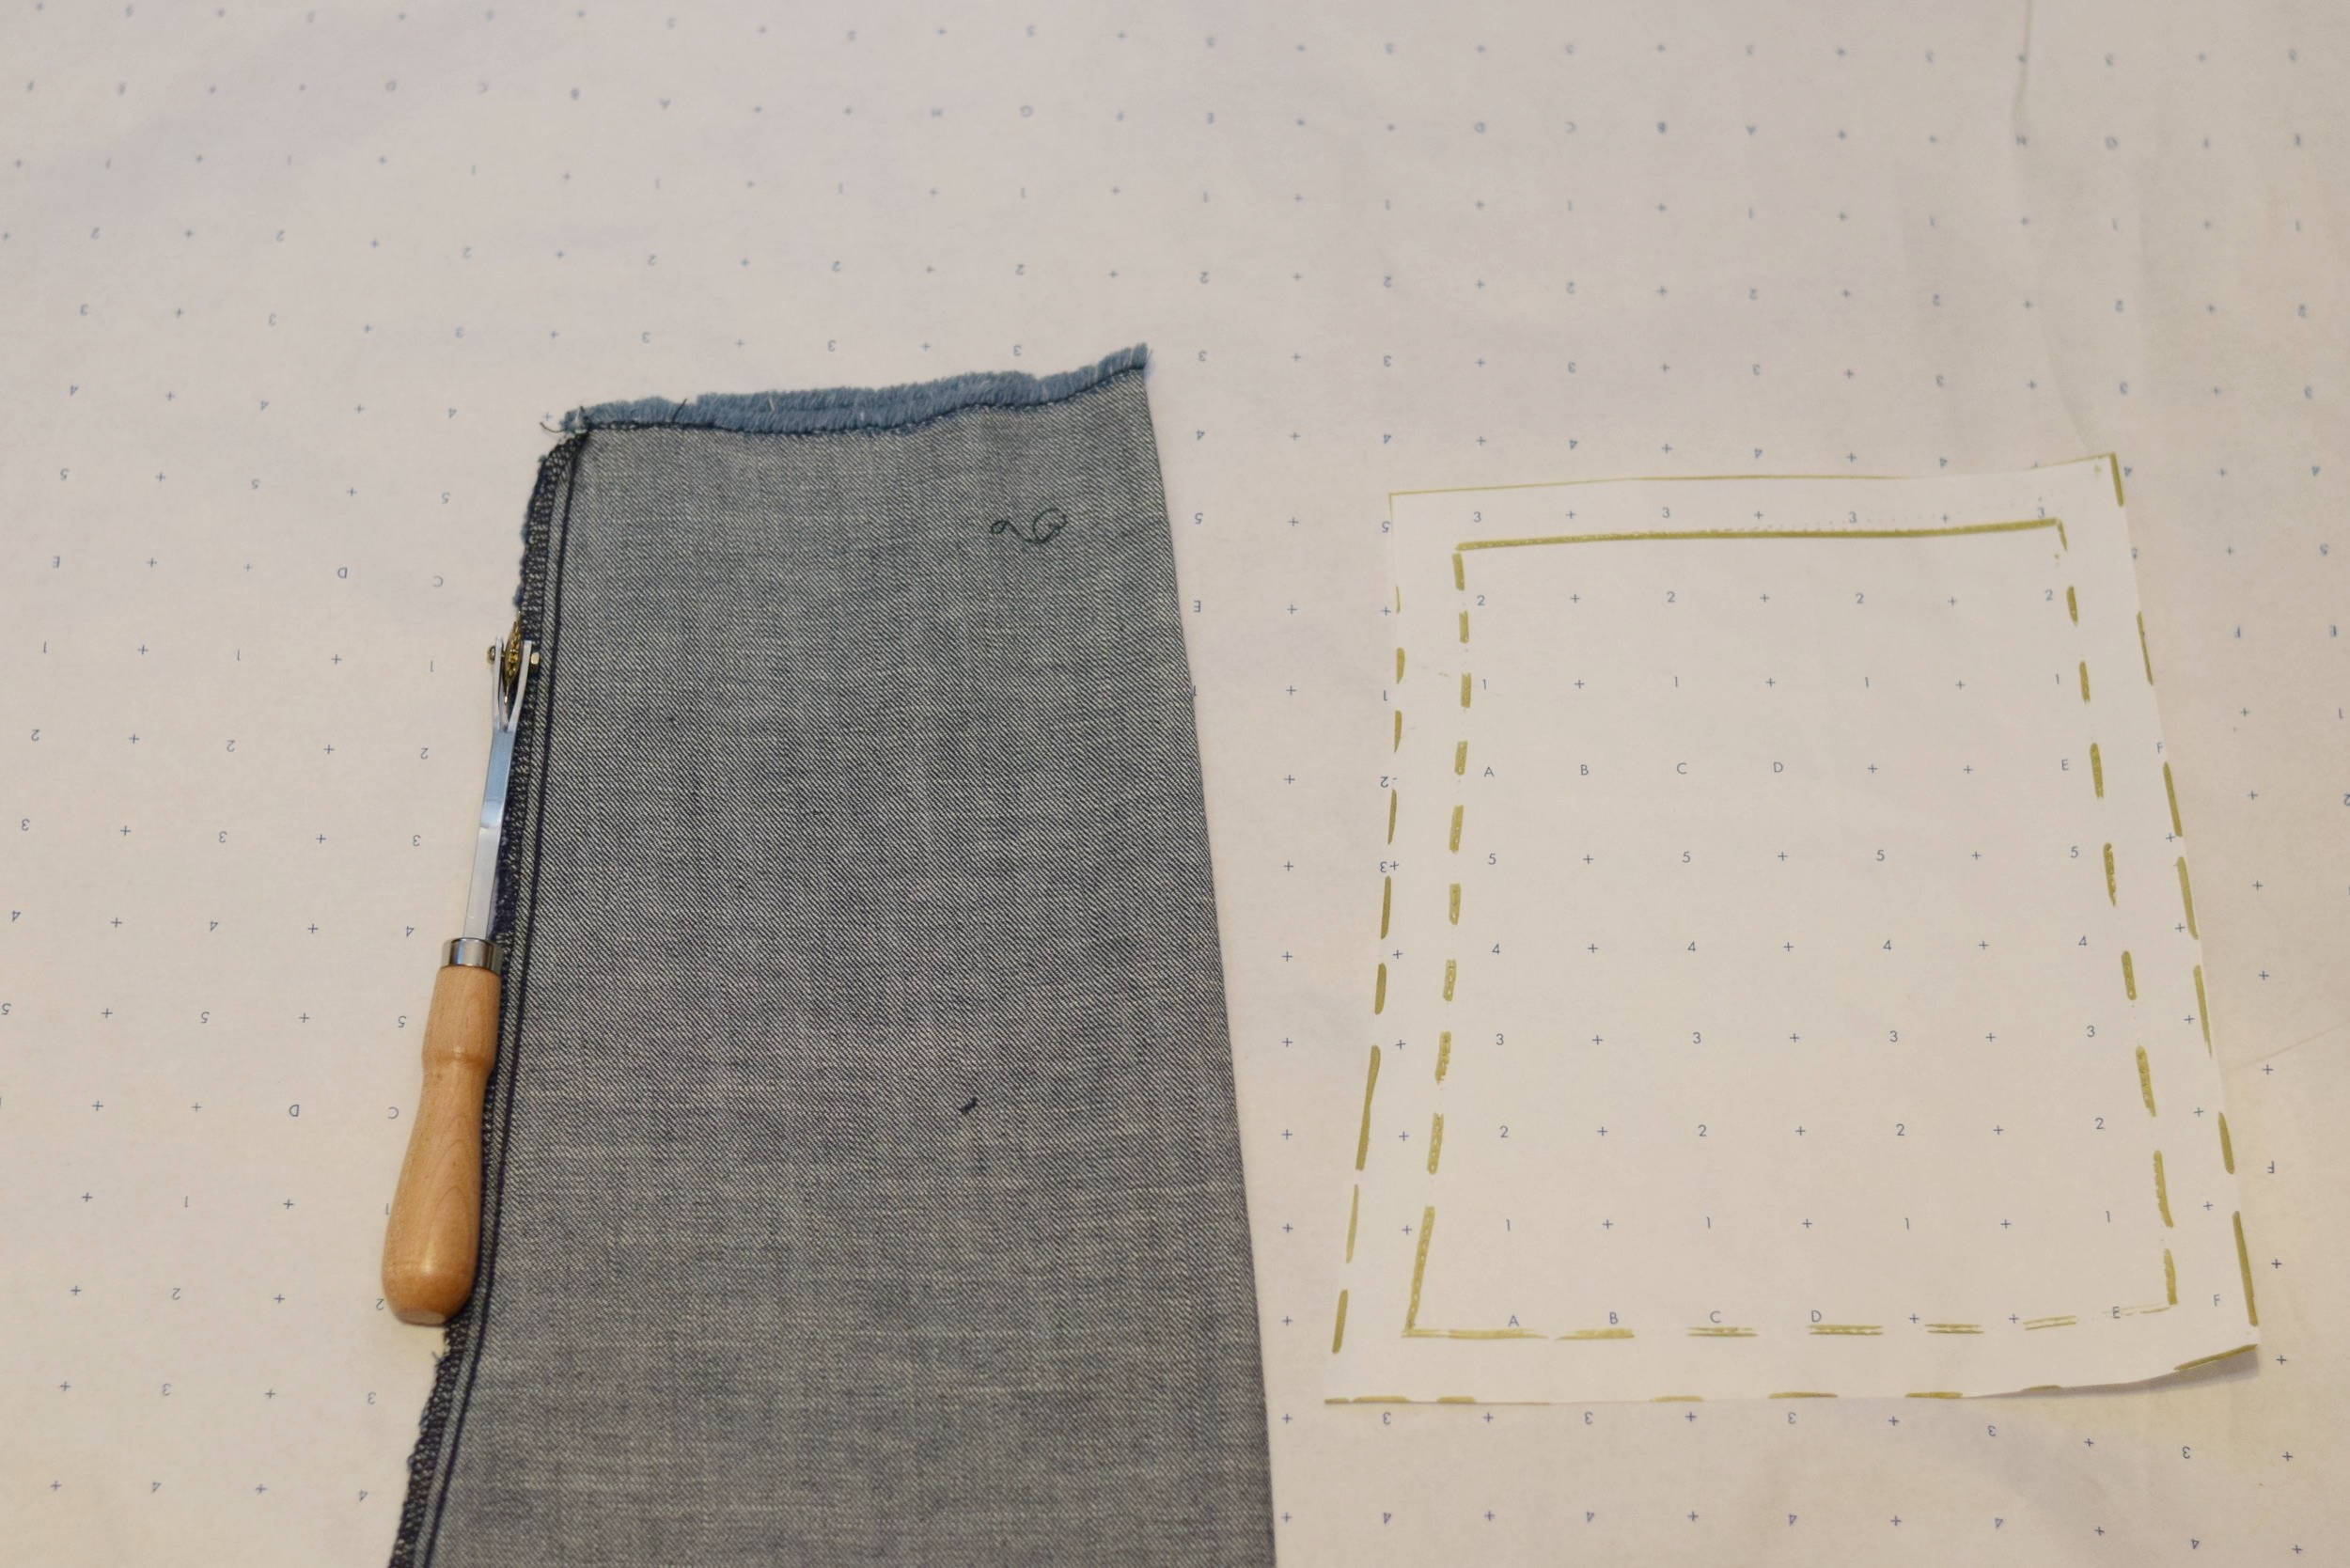 I turned the sleeve inside out and traced the bottom half out onto pattern paper using my tracing wheel. After tracing it out I added seam allowance and cut the pattern piece on the fold.